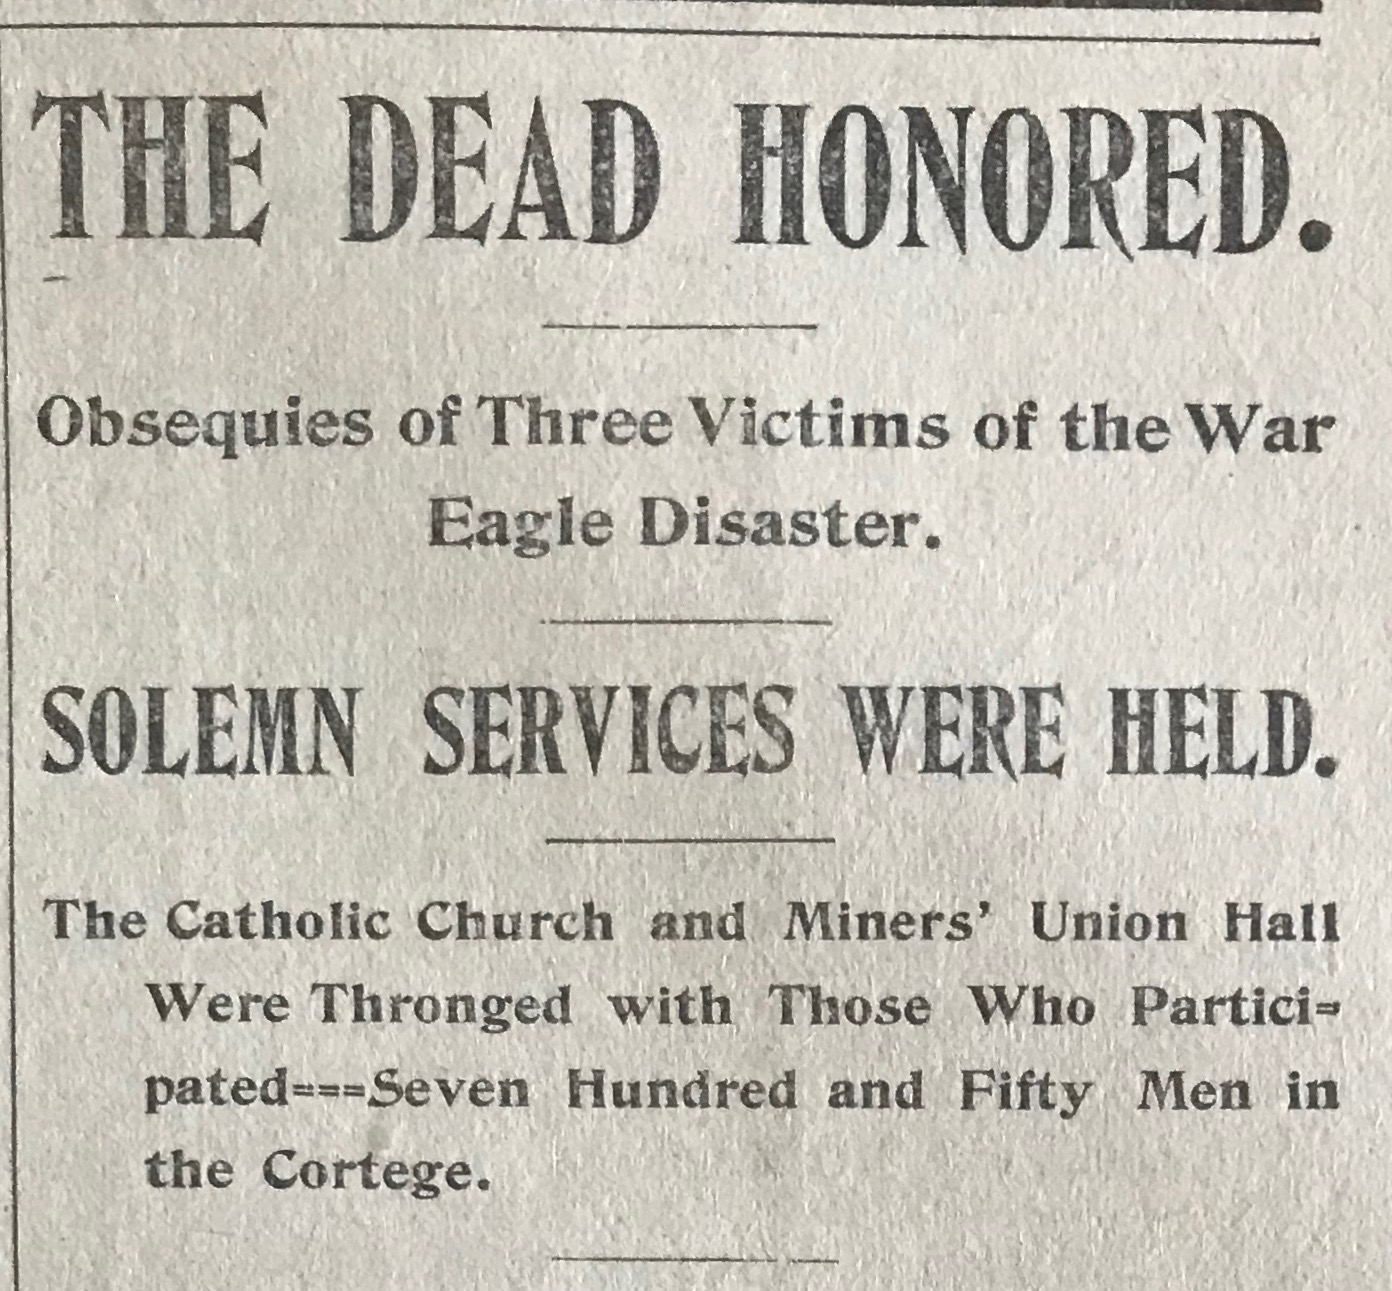 The  Rossland Miner , May 24th, 1899. From the article:   The cortege that followed the bodies to the grave was the largest ever seen in the city. There were 750 men in line. Indeed, there was only one similar public demonstration which in any way compared with it, and that was on March 14, 1896, when the funeral of five men killed in the Centre Star took place.